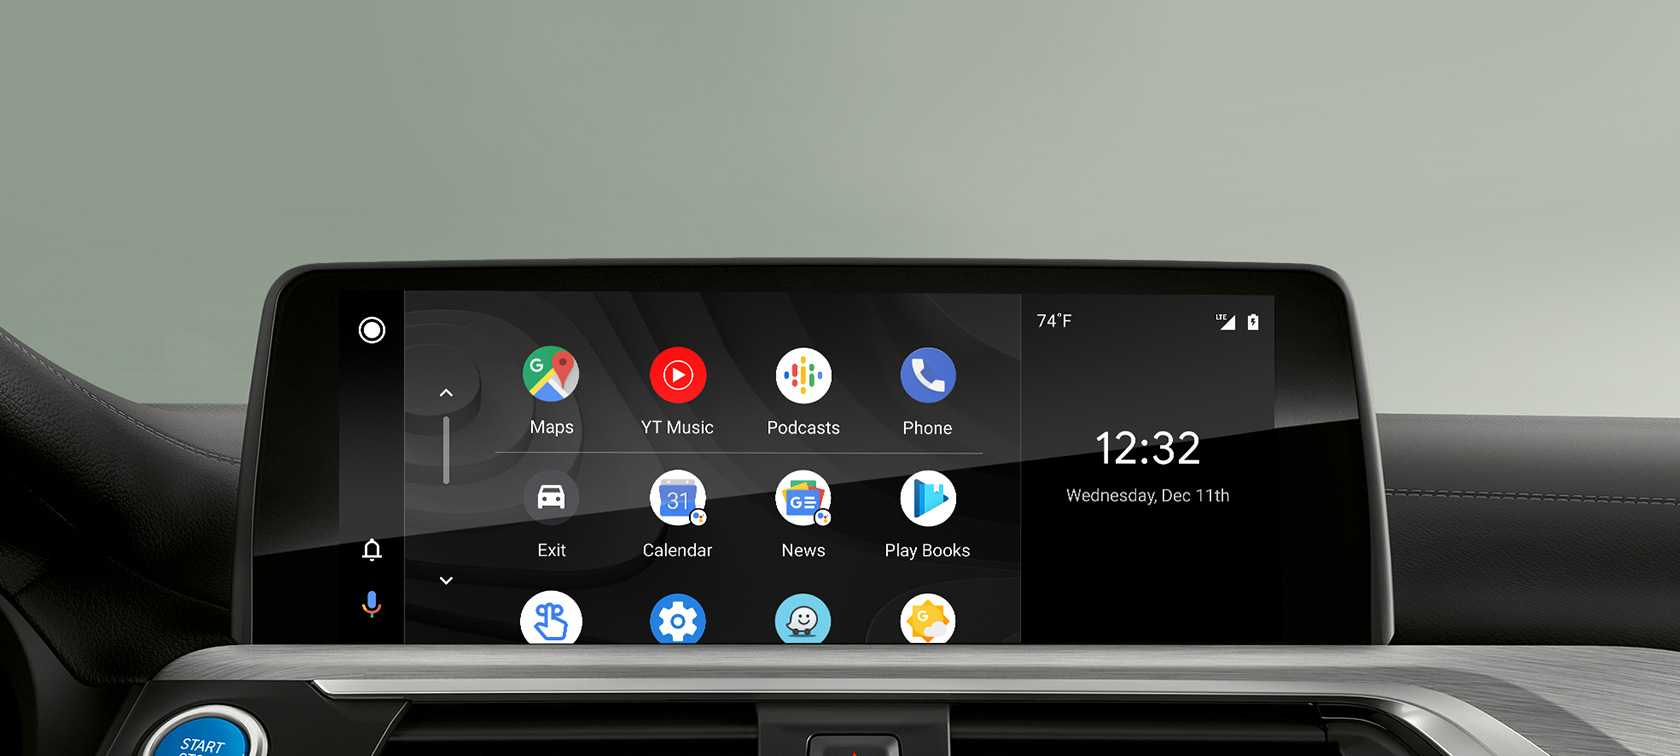 Android Auto Smartphone Integration nel Control Display di BMW ConnectedDrive